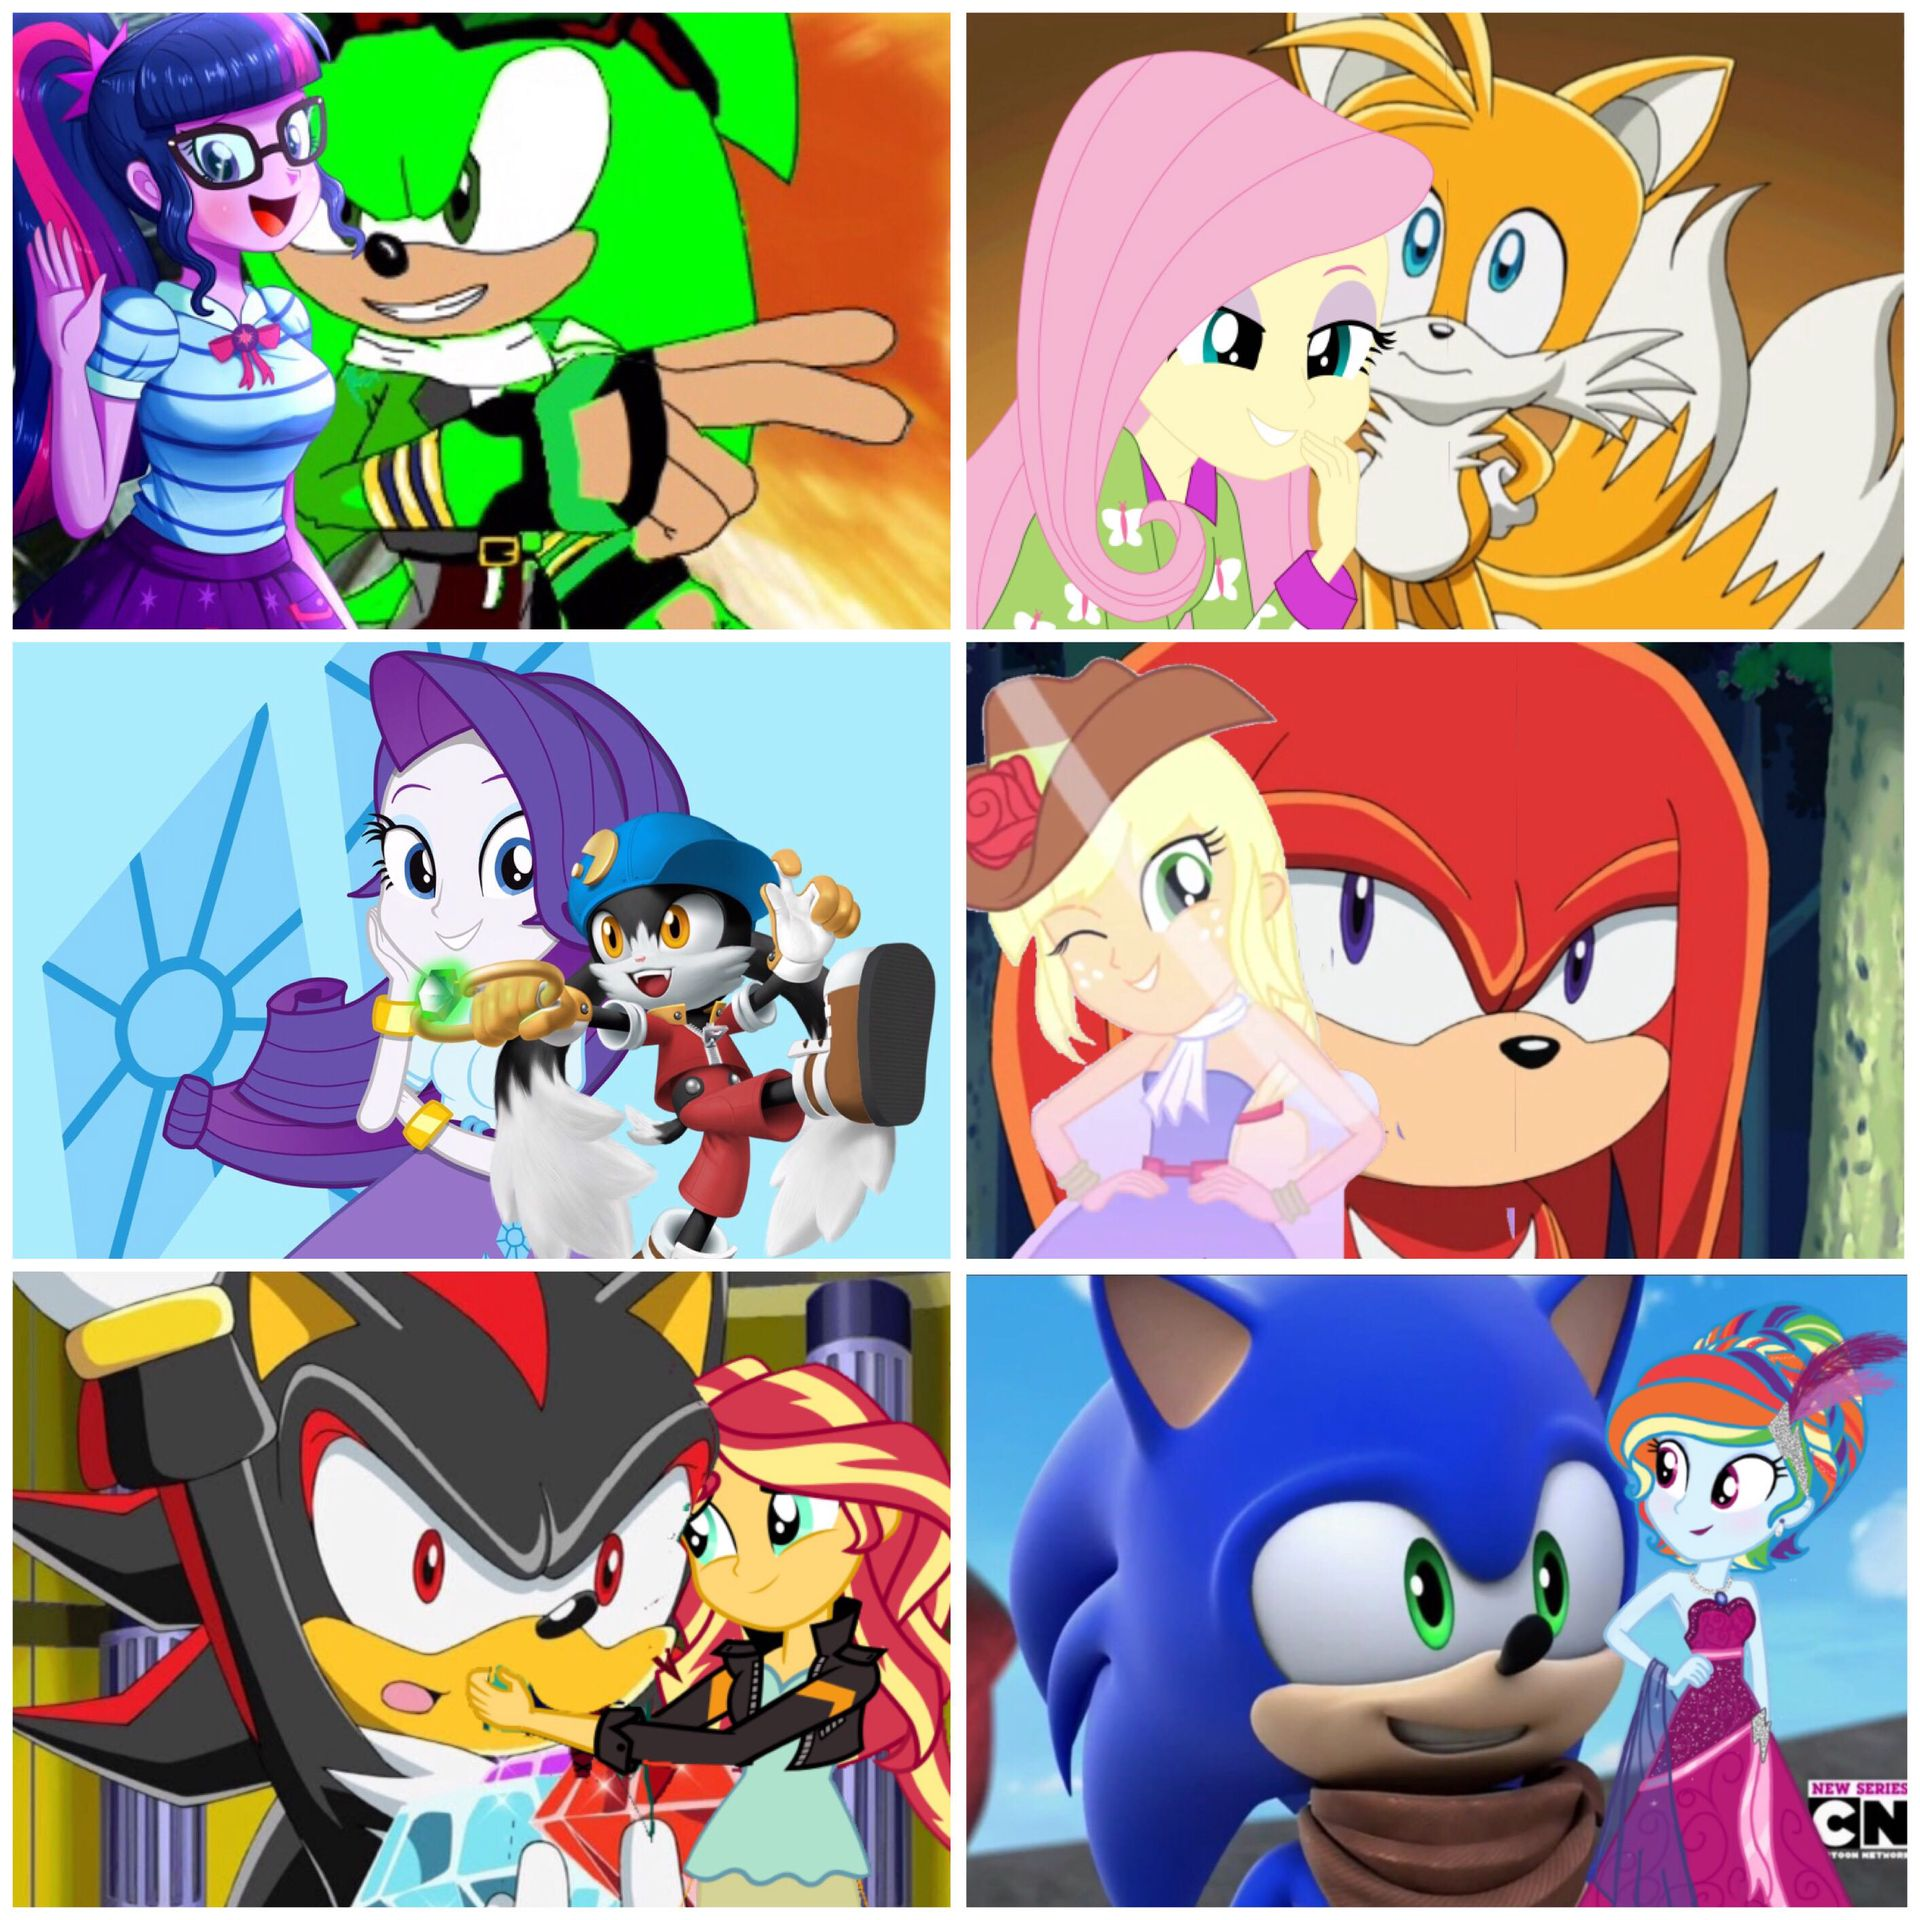 Sonic X: Mobian Heroes And Equestria Girls